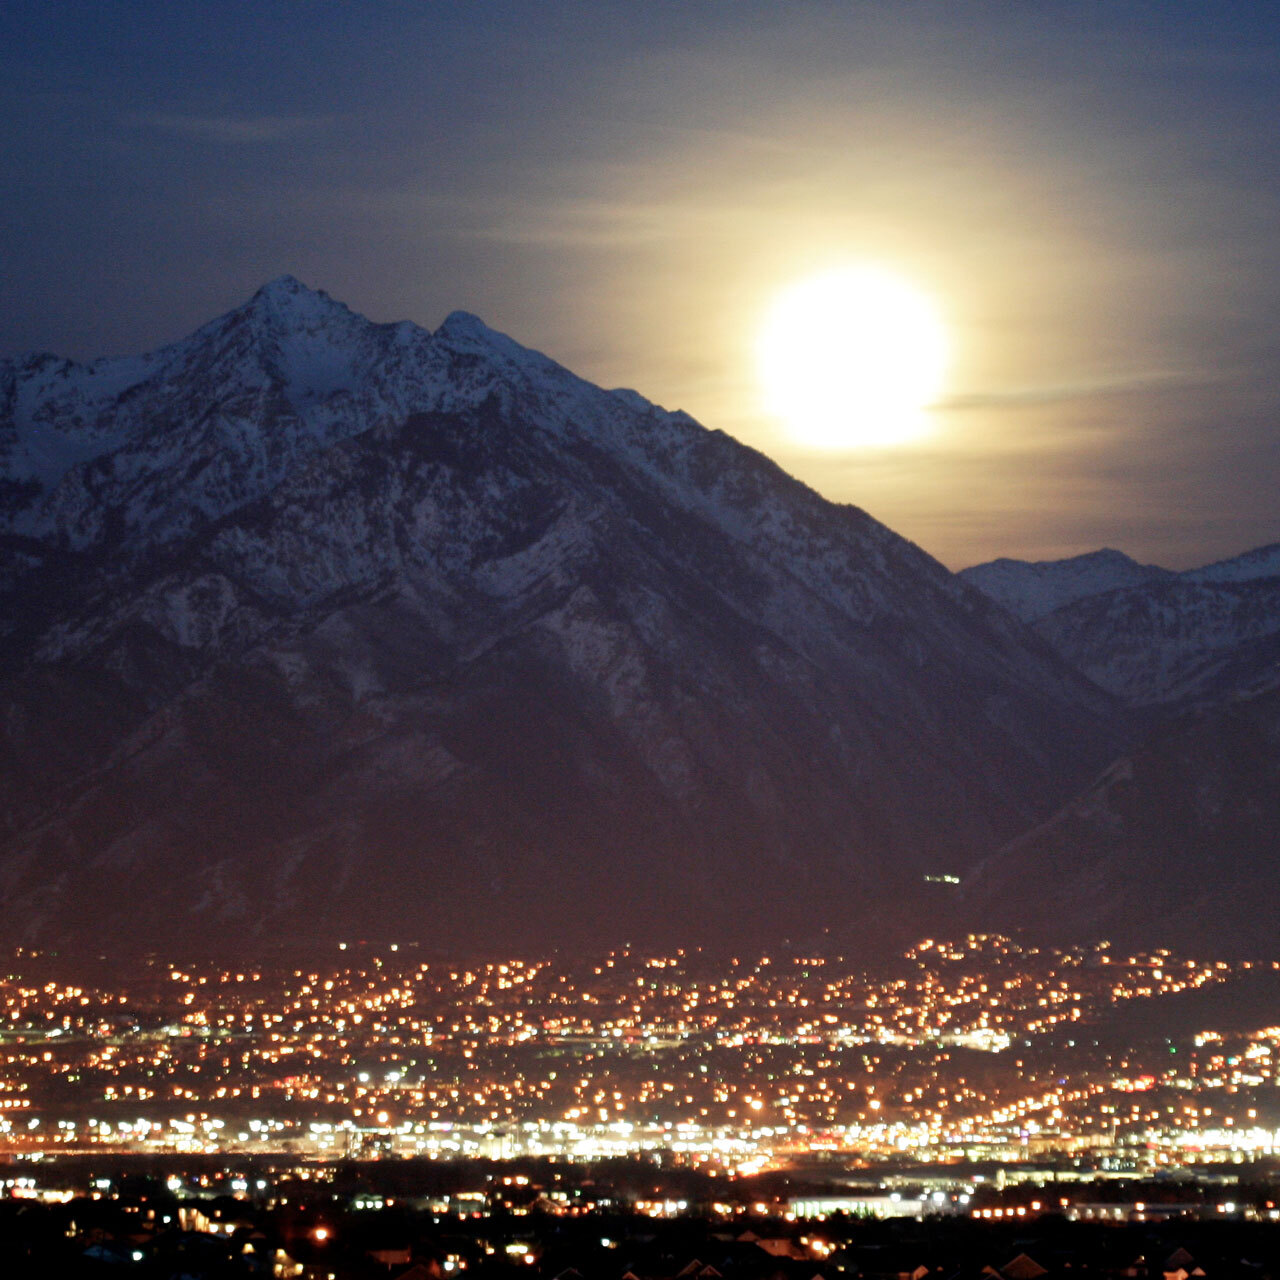 Bright moon rising over mountains with city lights in the foreground.